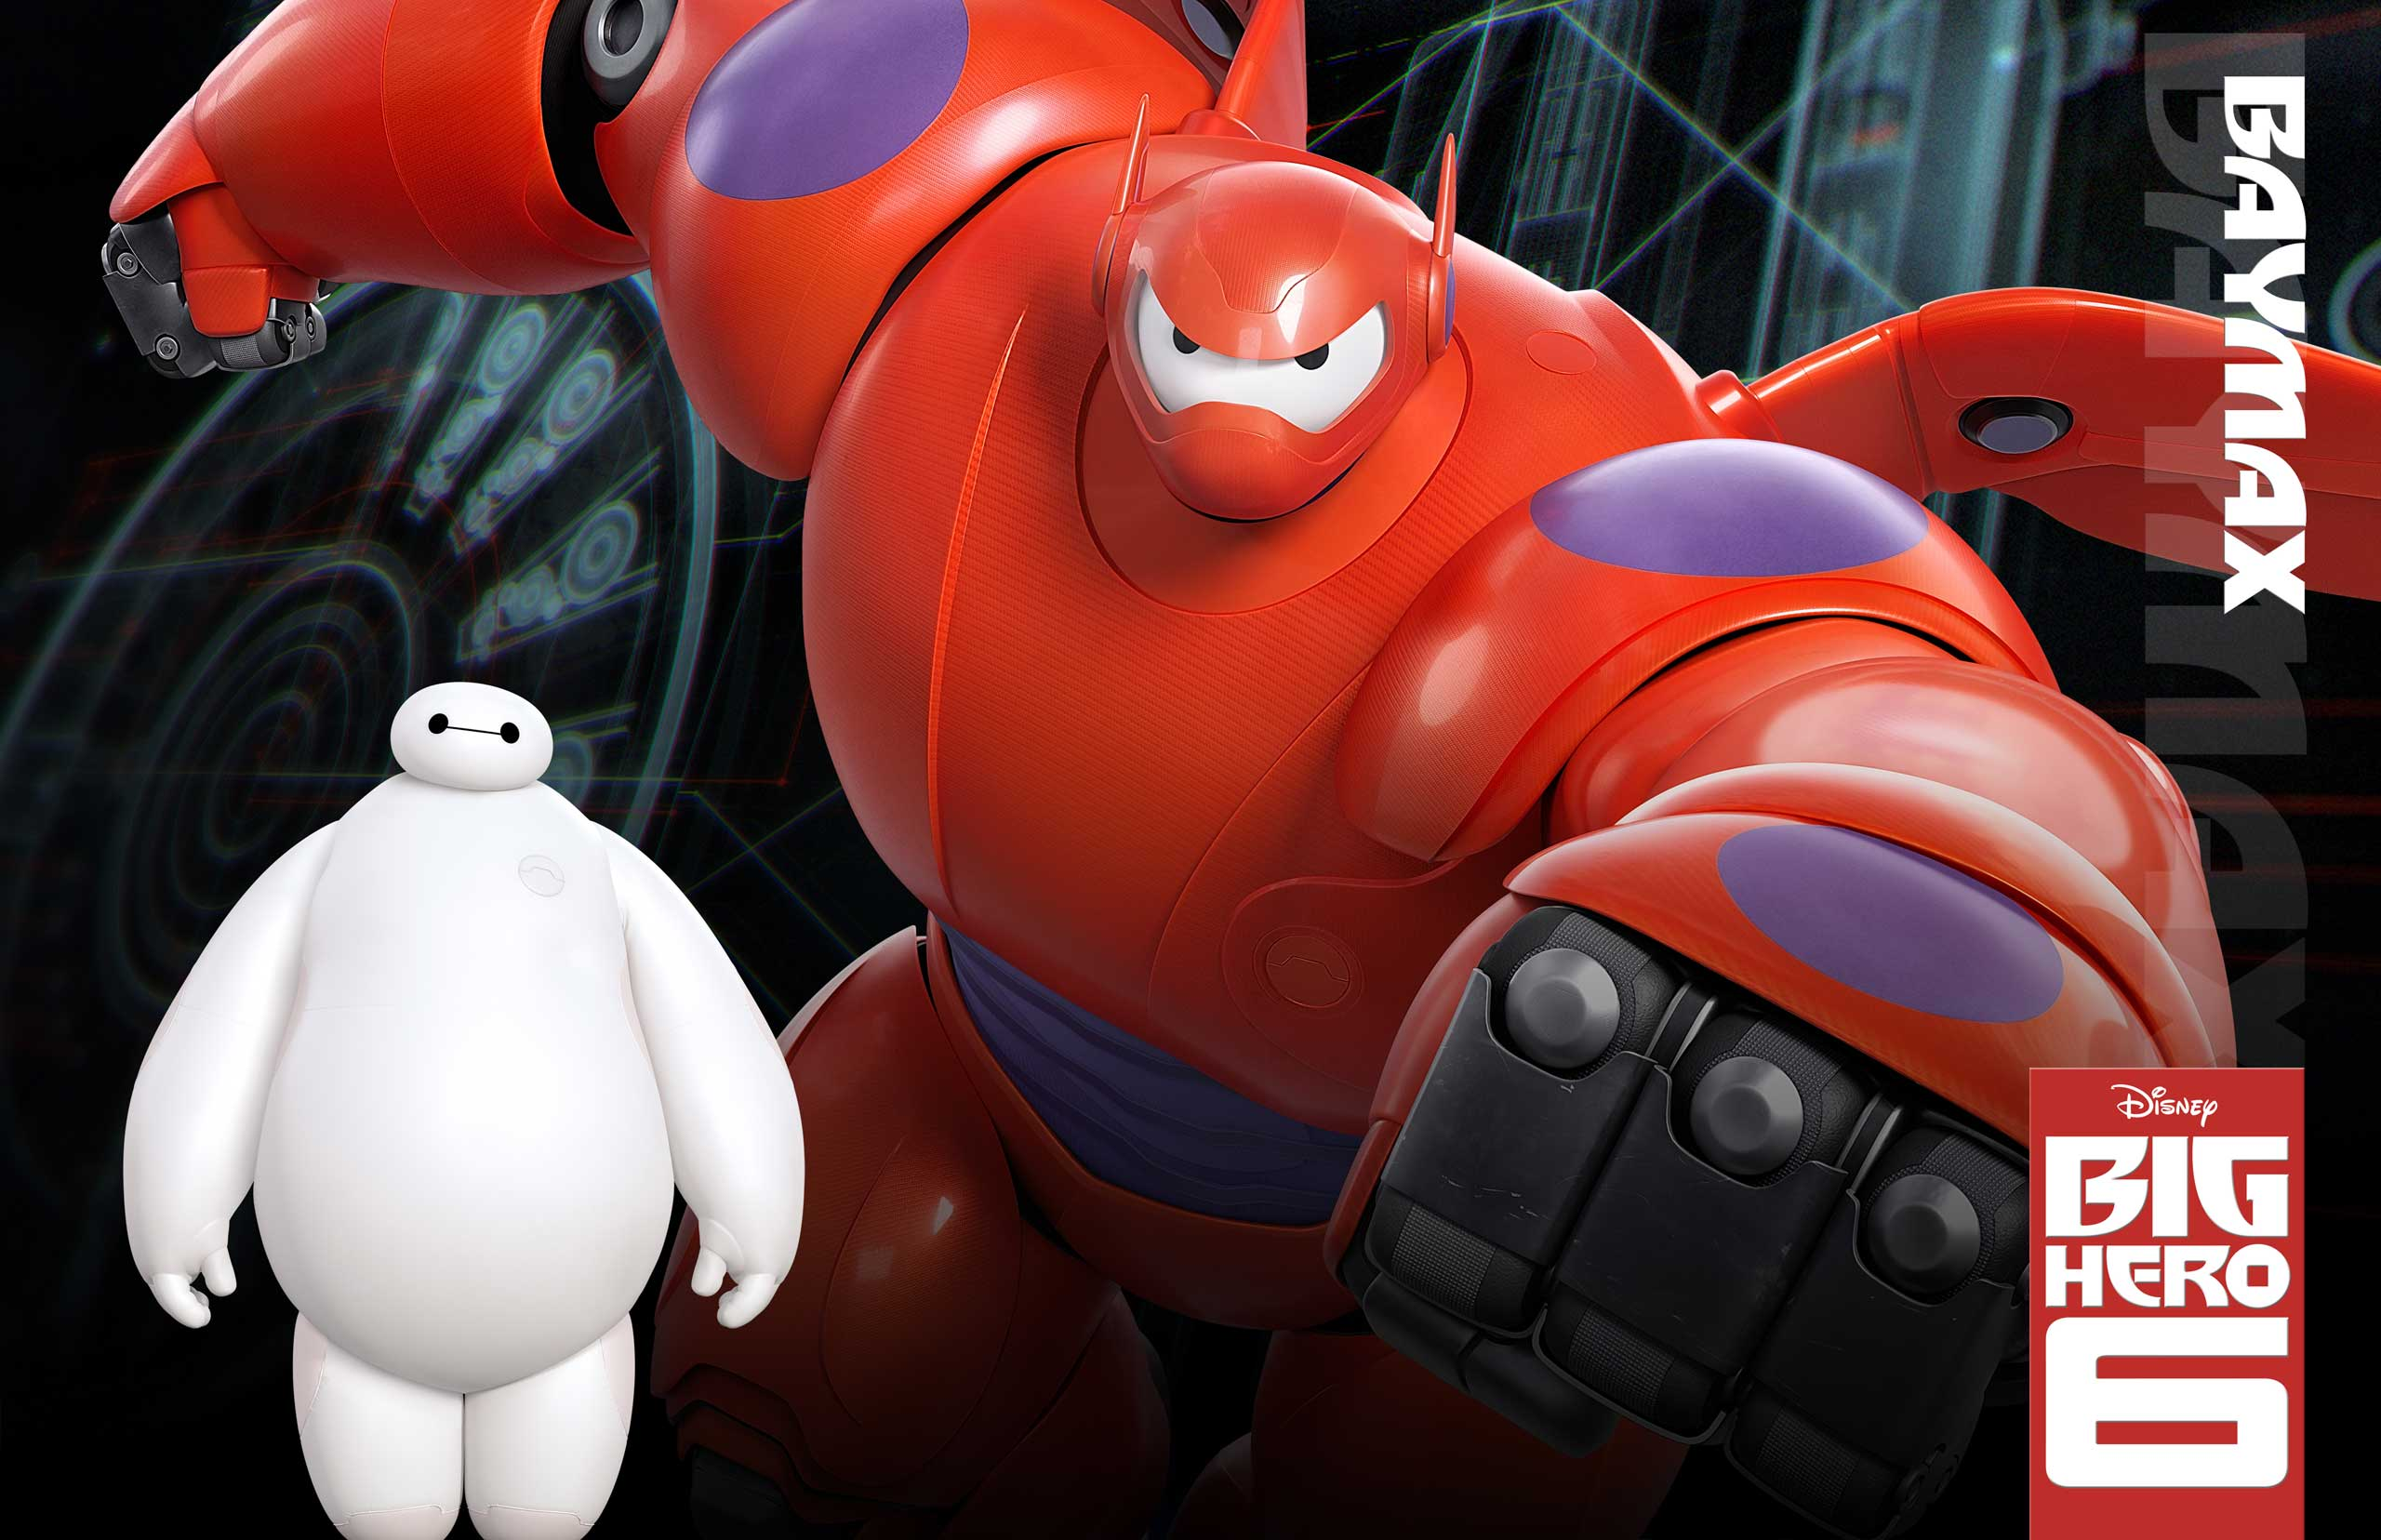 Baymax, voiced by 30 Rock alum Scott Adsit, is a friendly, giant, inflatable robot who was created as a medical companion to treat ailments, but gets upgraded with armor and weapons to fight crime.